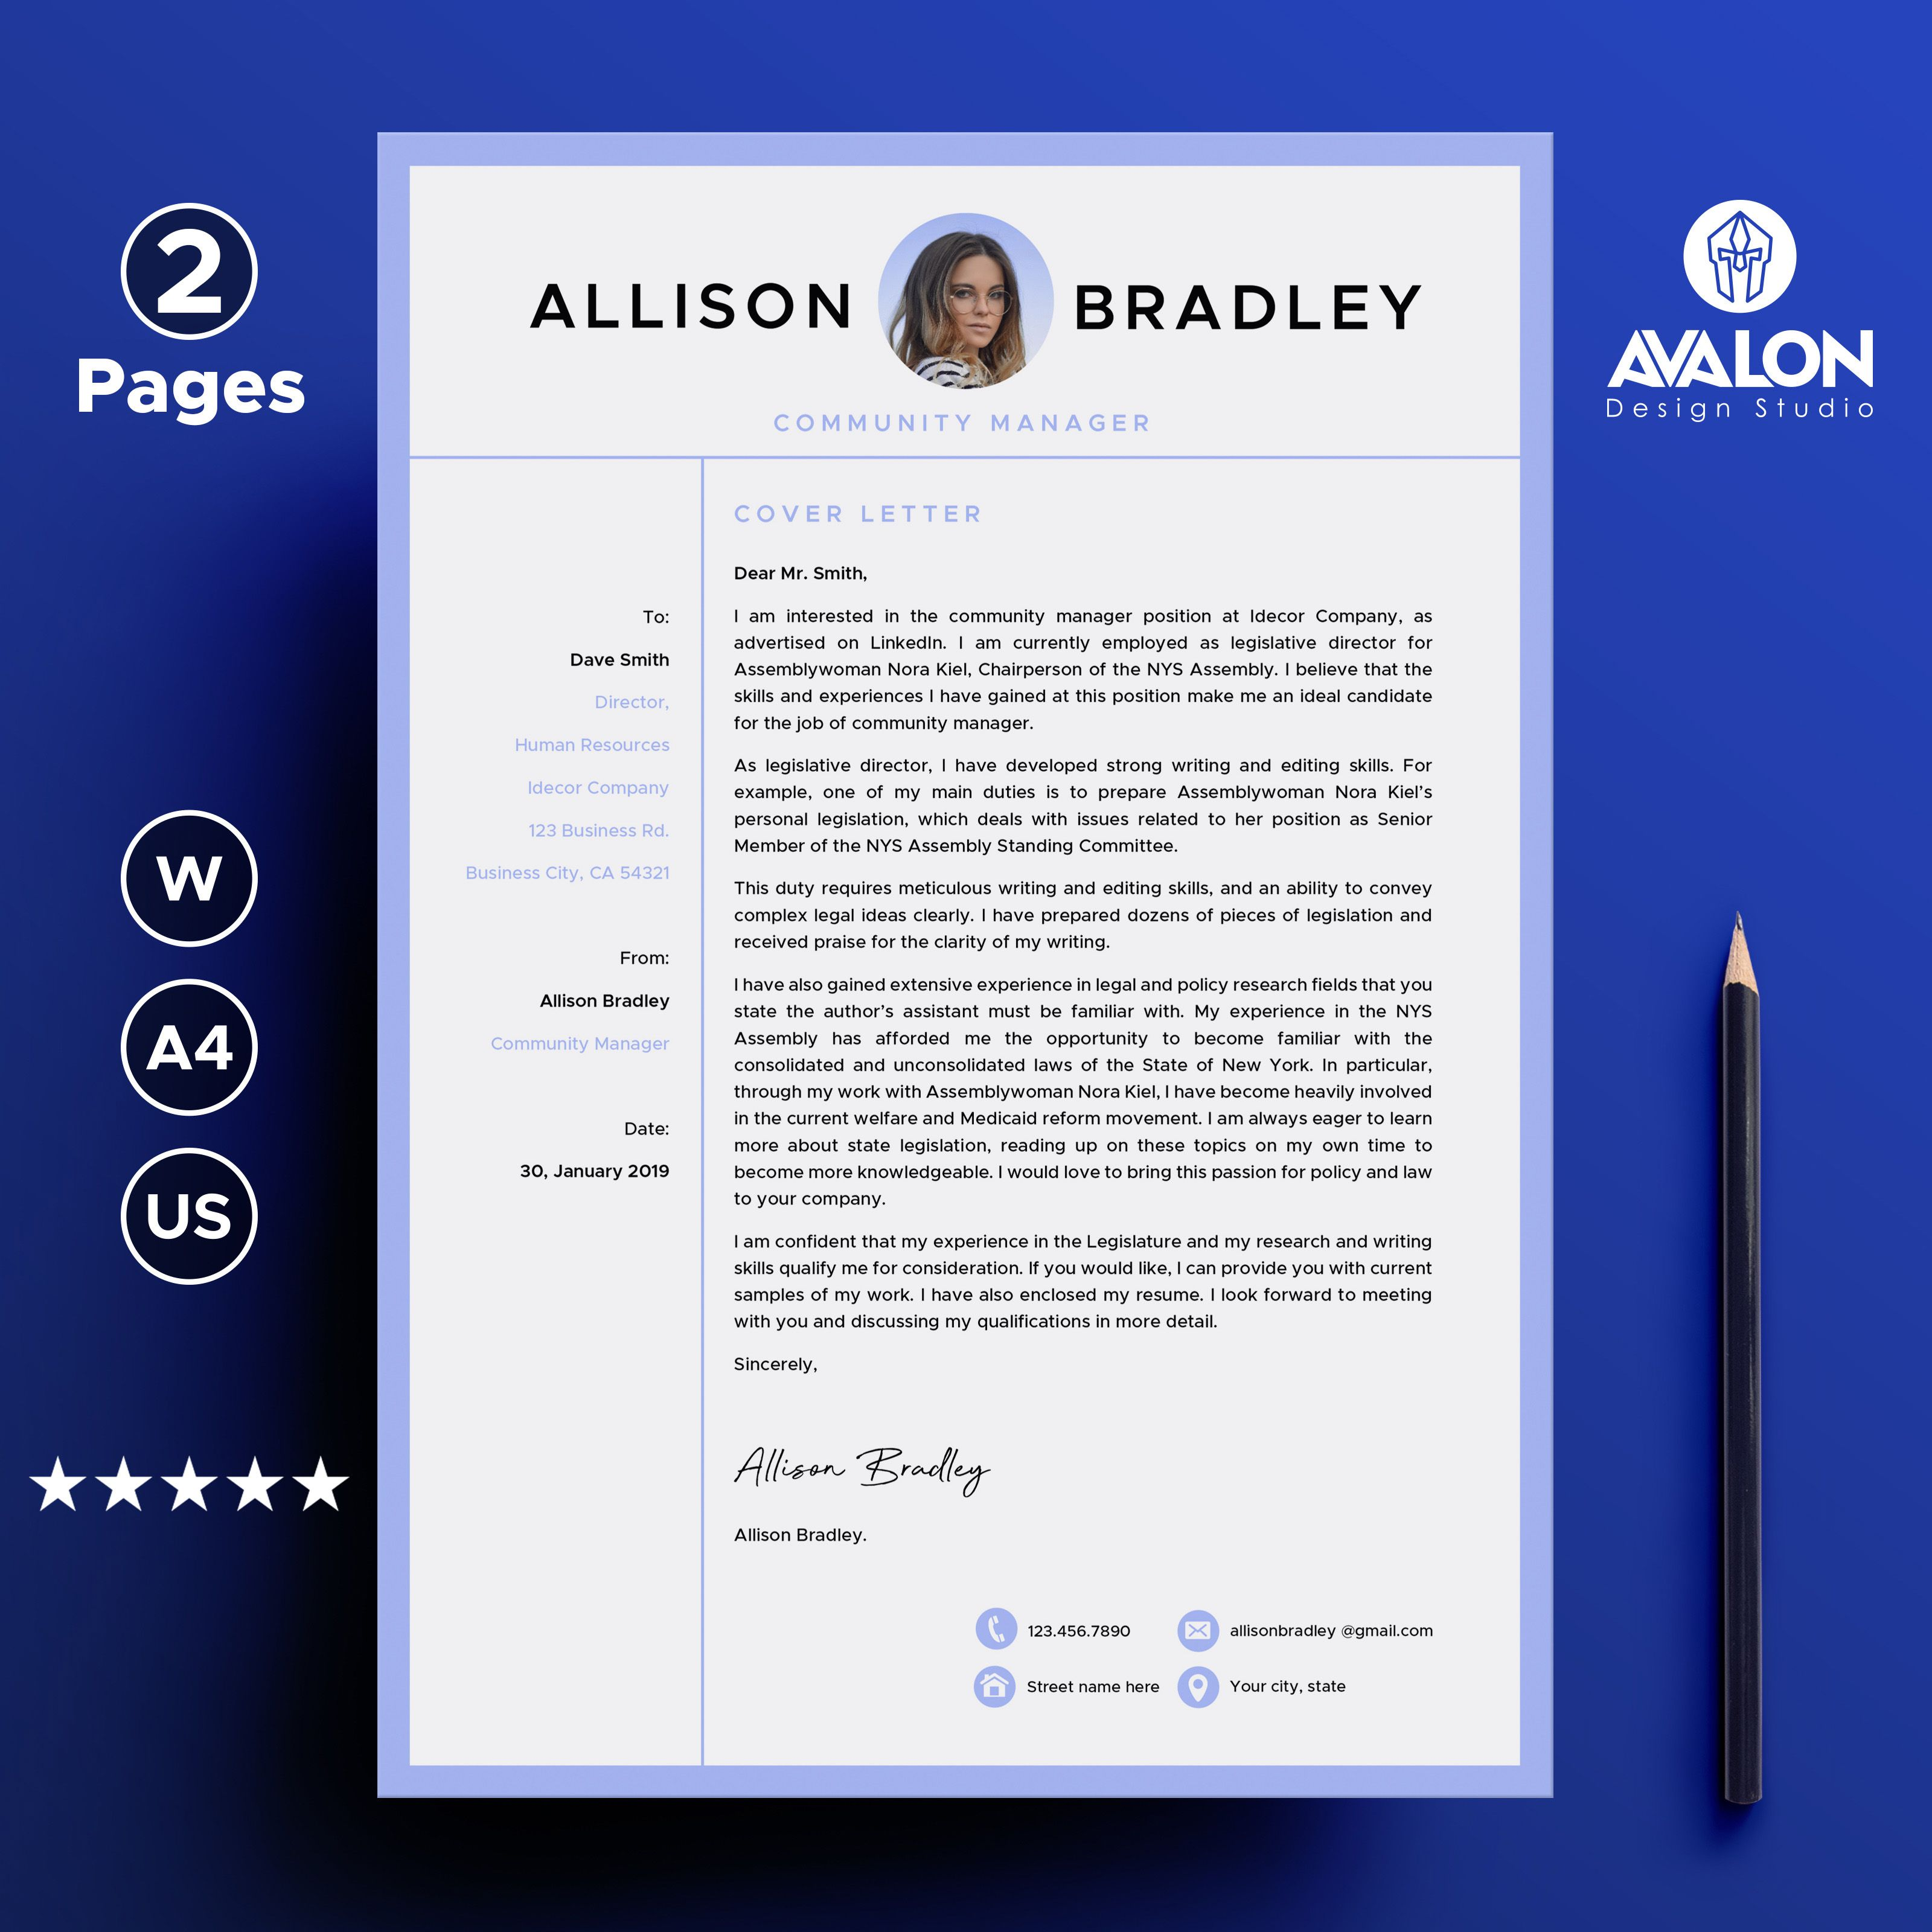 Professional Cover Letter Template For Microsoft Word 2 Pages Full Editable Instant Professional Cover Letter Template Cover Letter Template Resume Template Microsoft word template cover letter